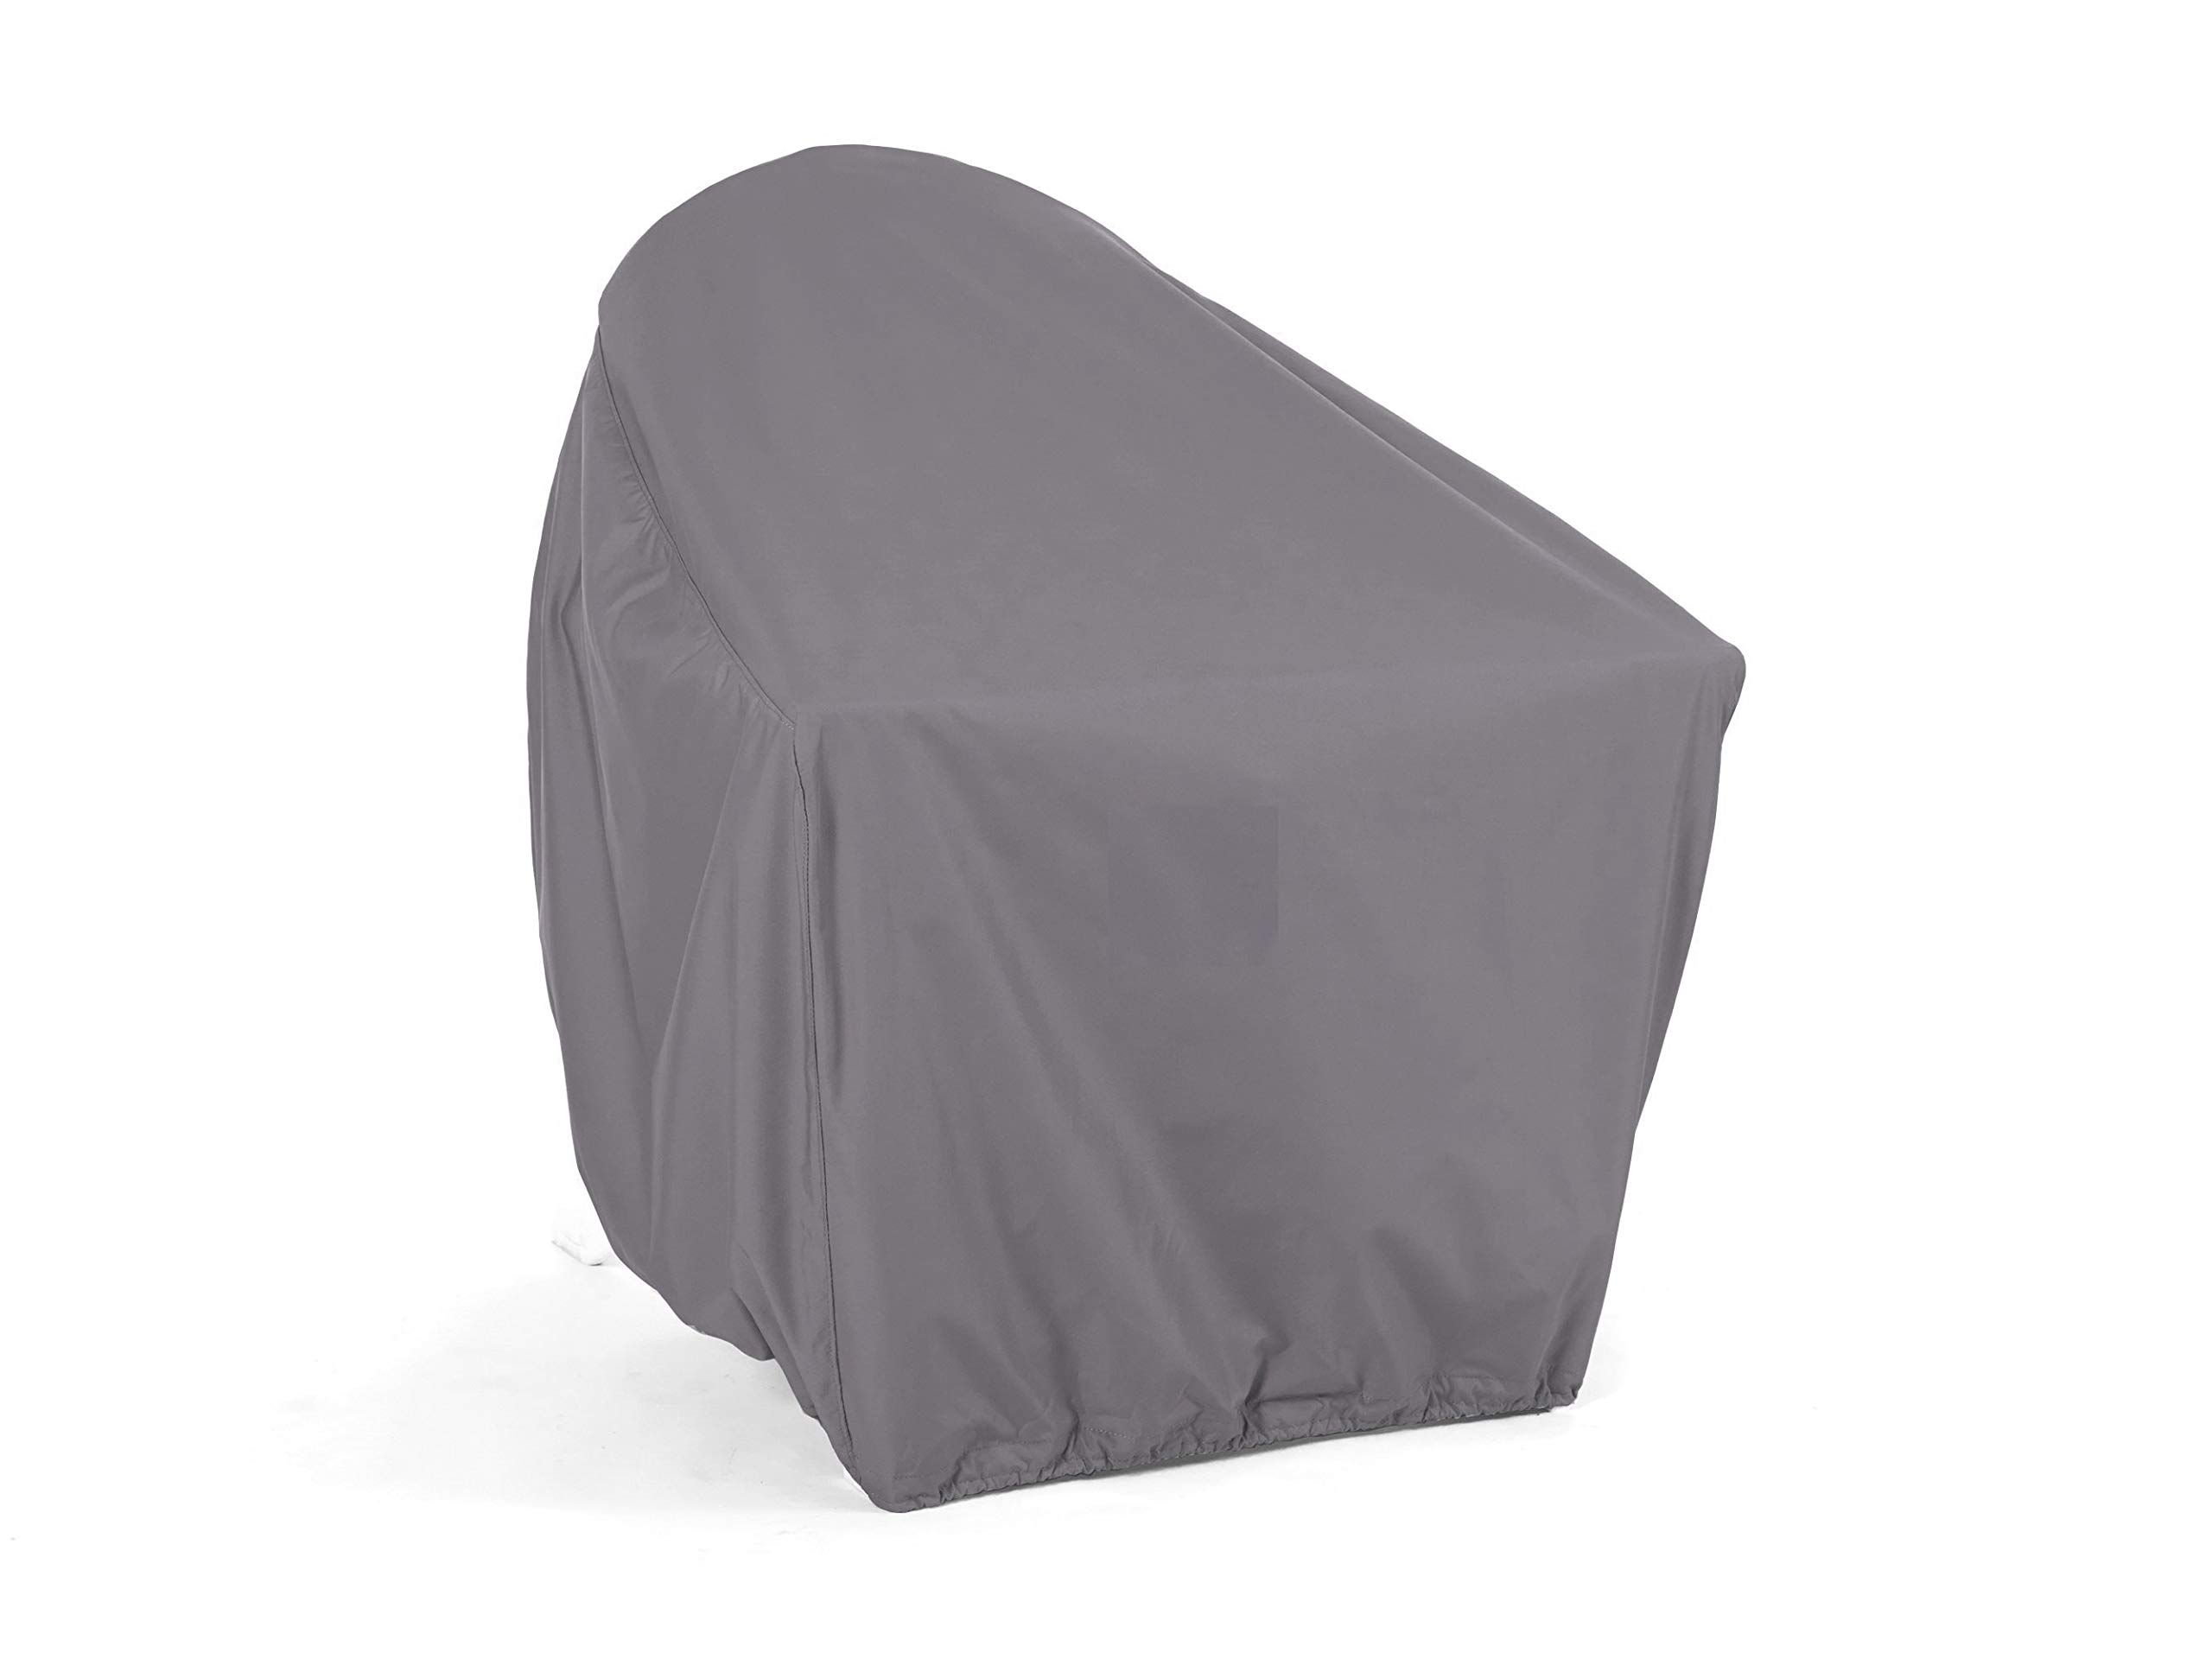 Covermates - Outdoor Adirondack Chair Cover - 32W x 34D x 38H - Elite Collection - 3 YR Warranty - Year Around Protection - Charcoal by Covermates